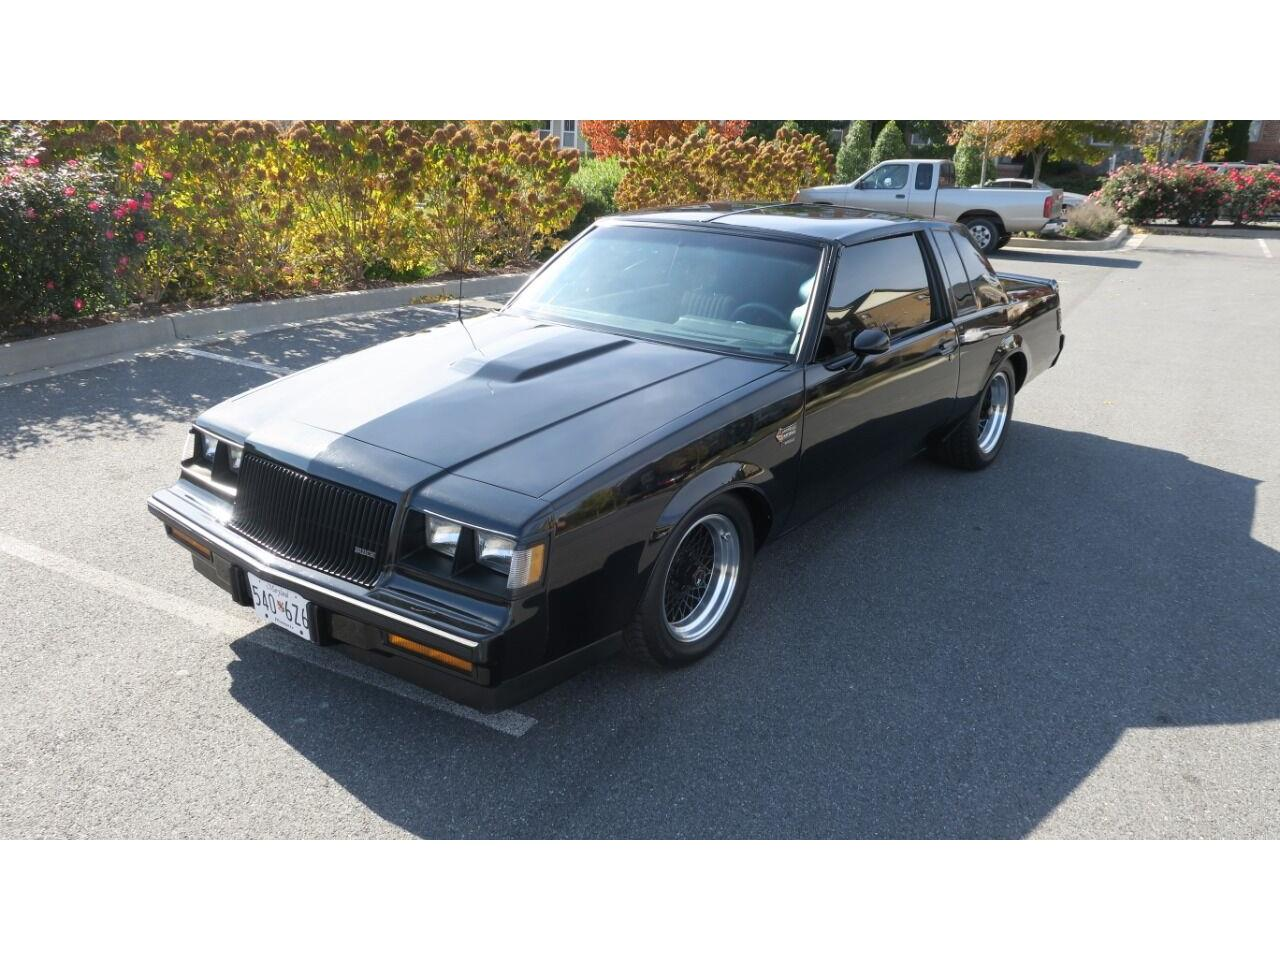 1987 Buick Regal (CC-1420311) for sale in Clarksburg, Maryland